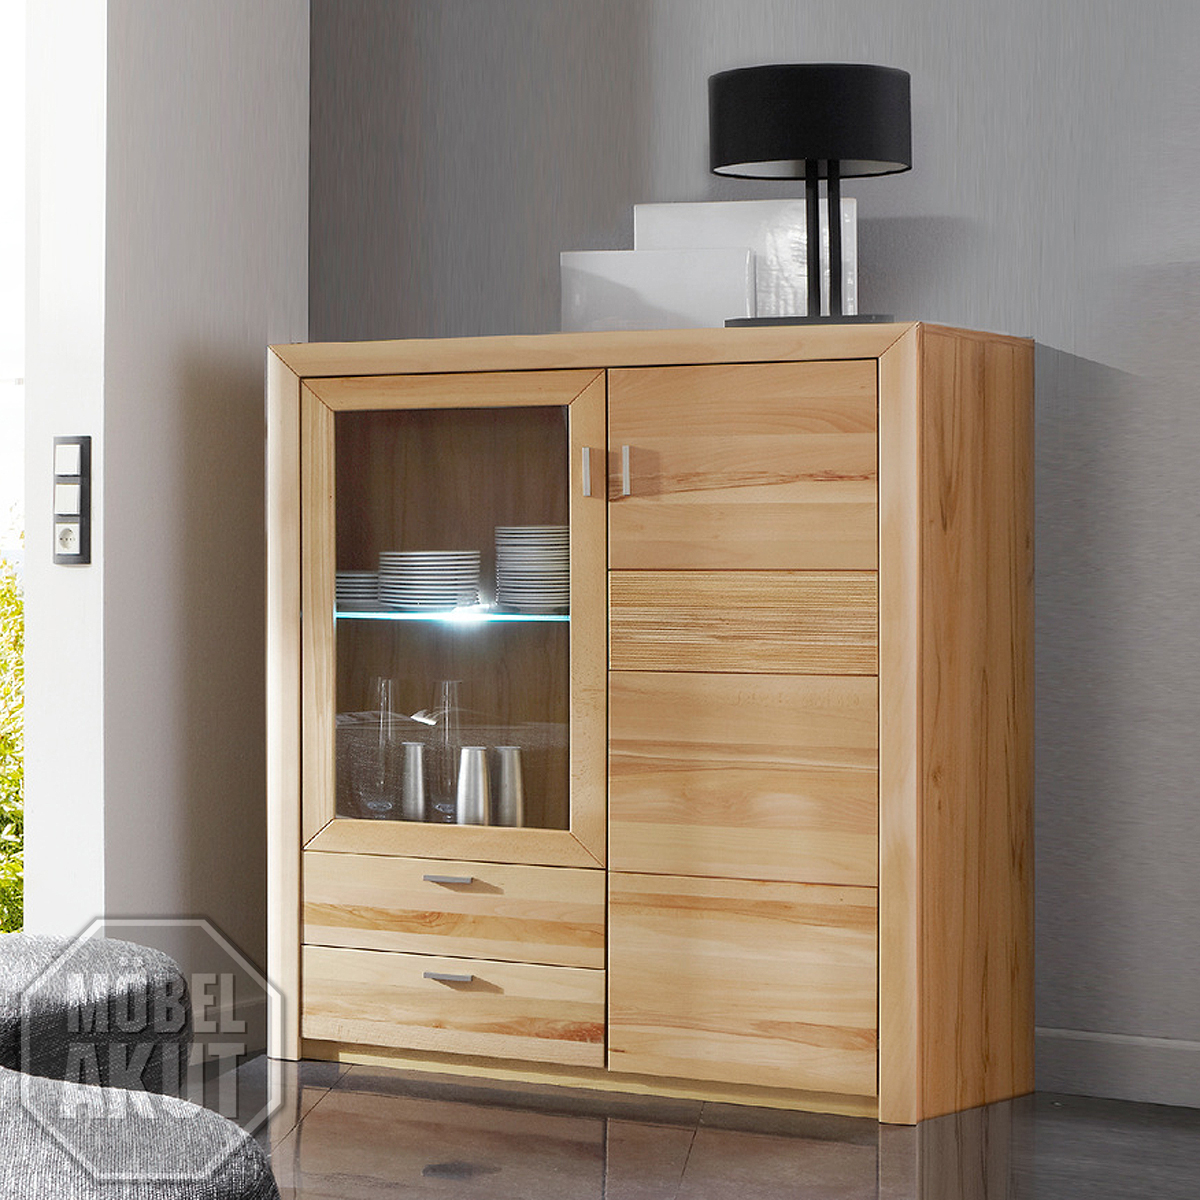 highboard passepartout 06a wohnzimmer schrank in kernbuche. Black Bedroom Furniture Sets. Home Design Ideas